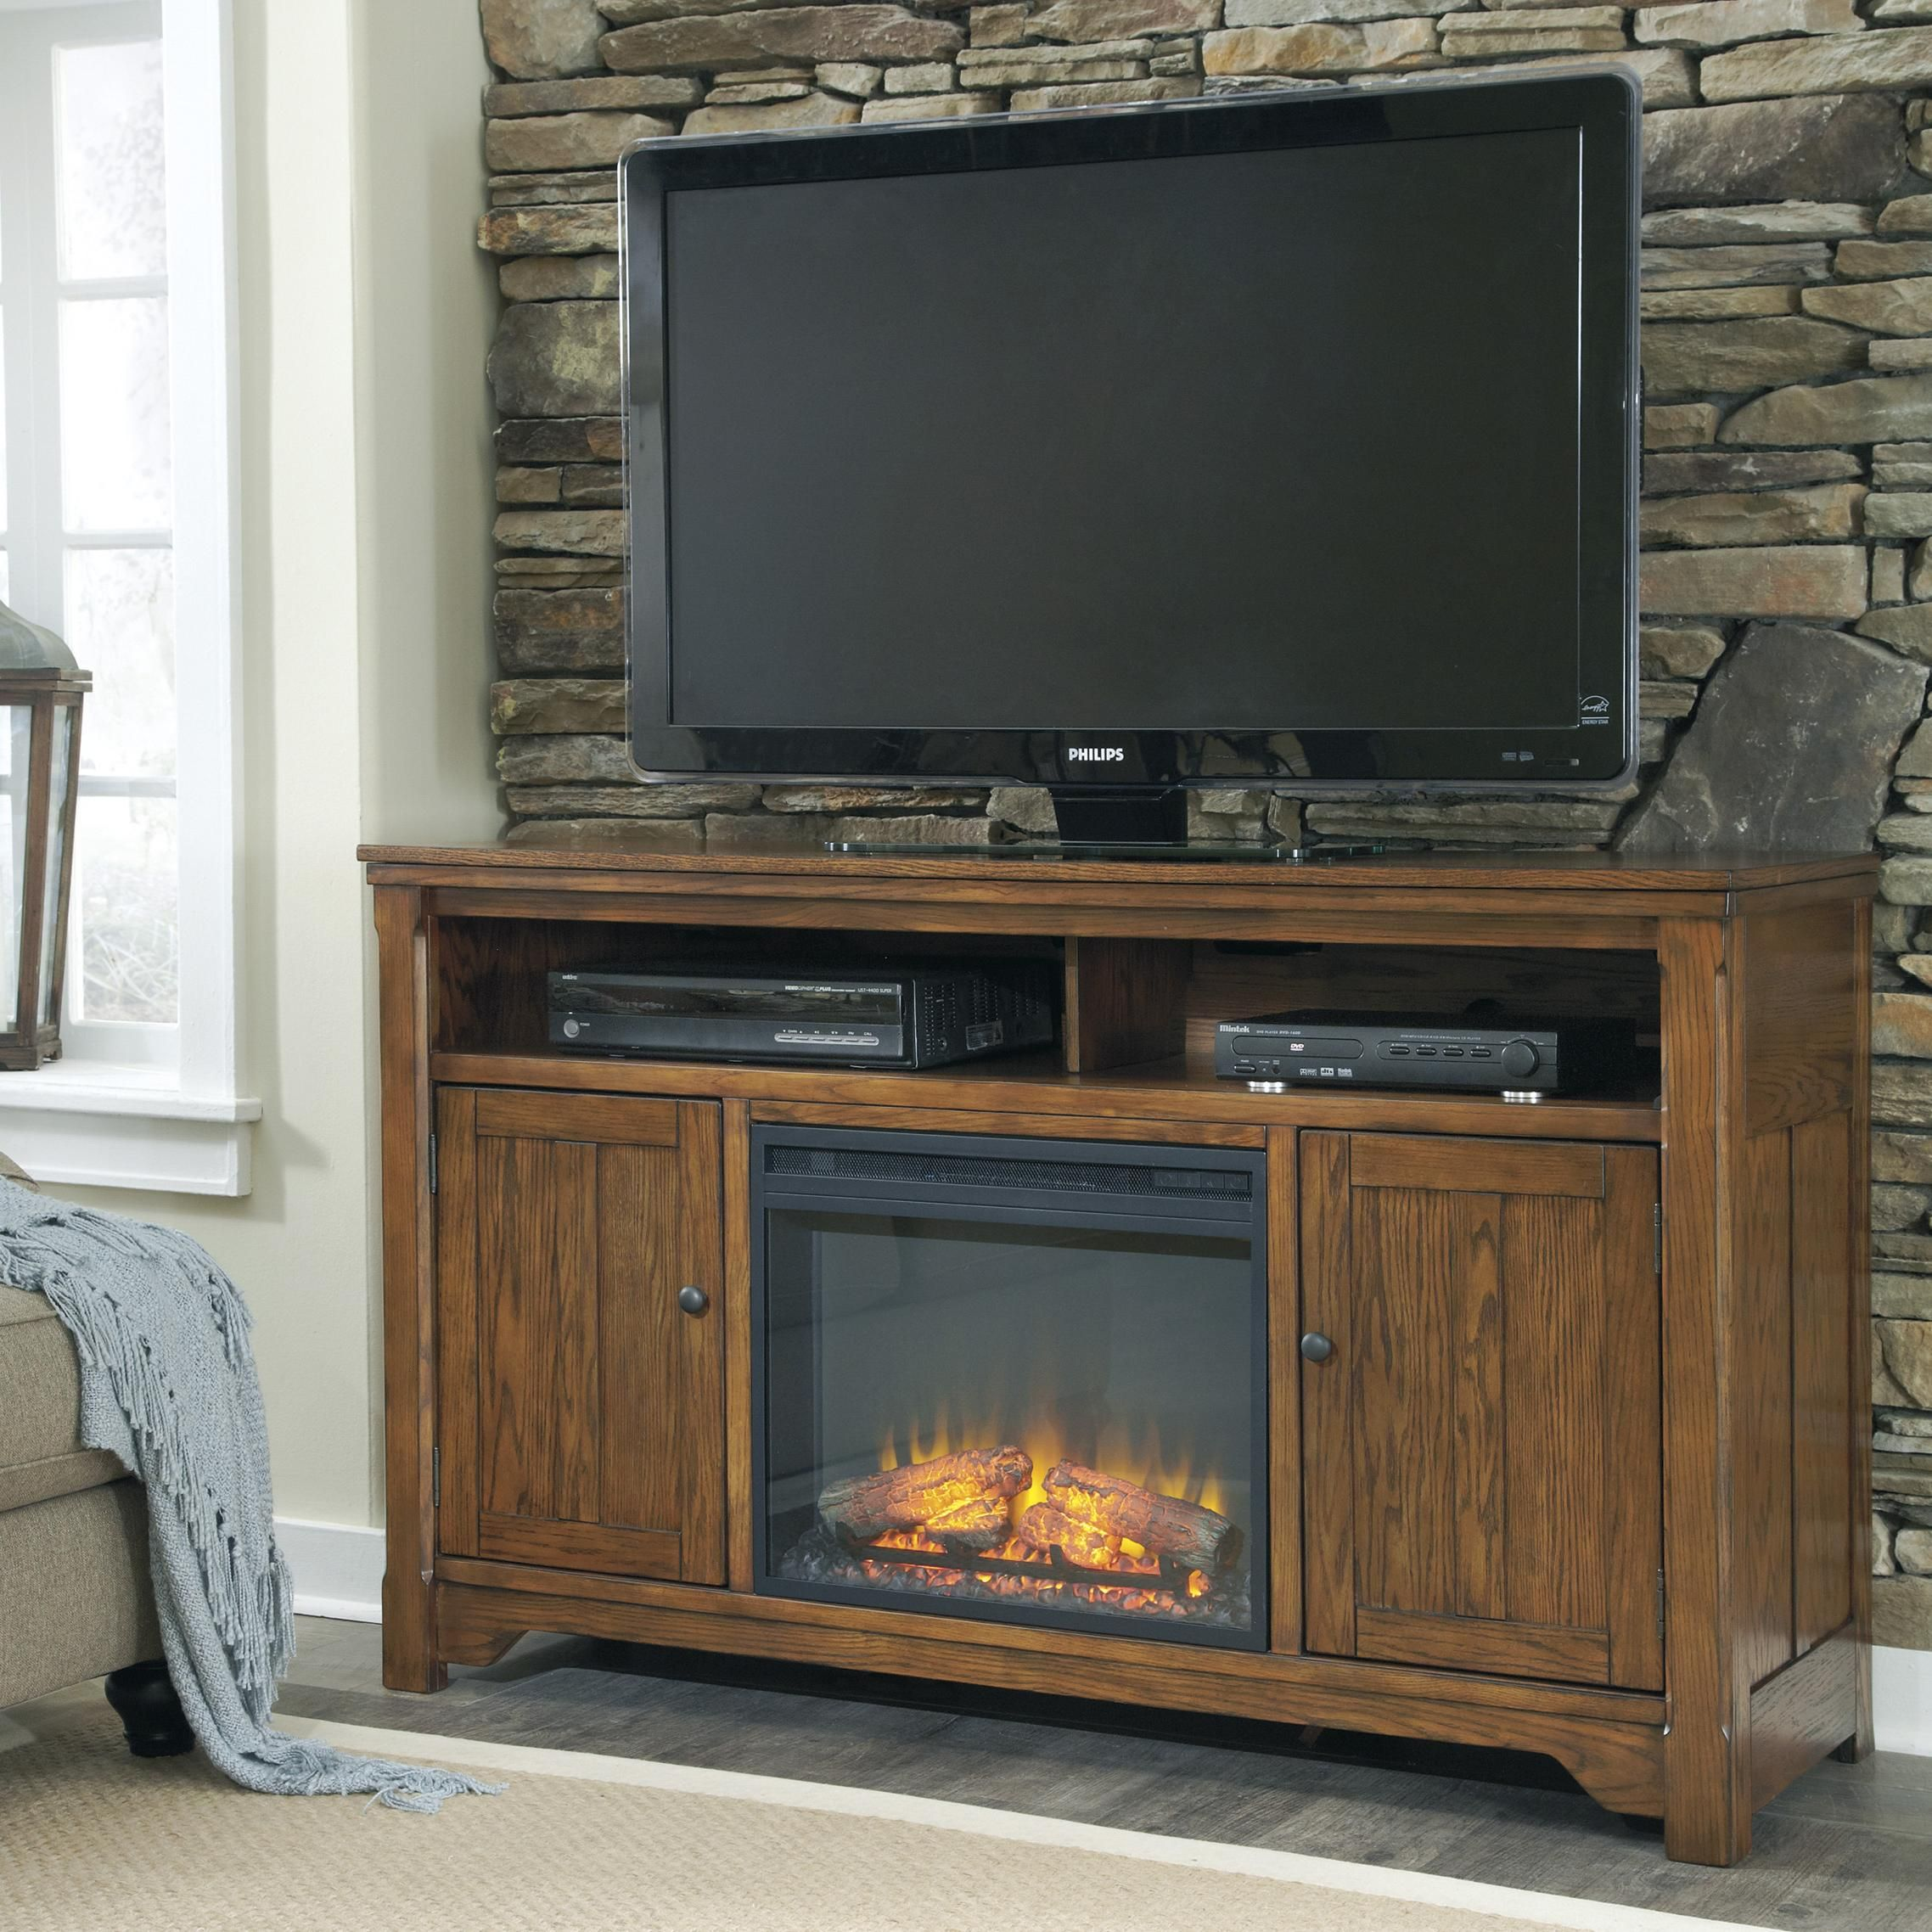 wfireplace w oh cupboard store furniture fireplace dealer product best shay tv ashley mentor stands stand